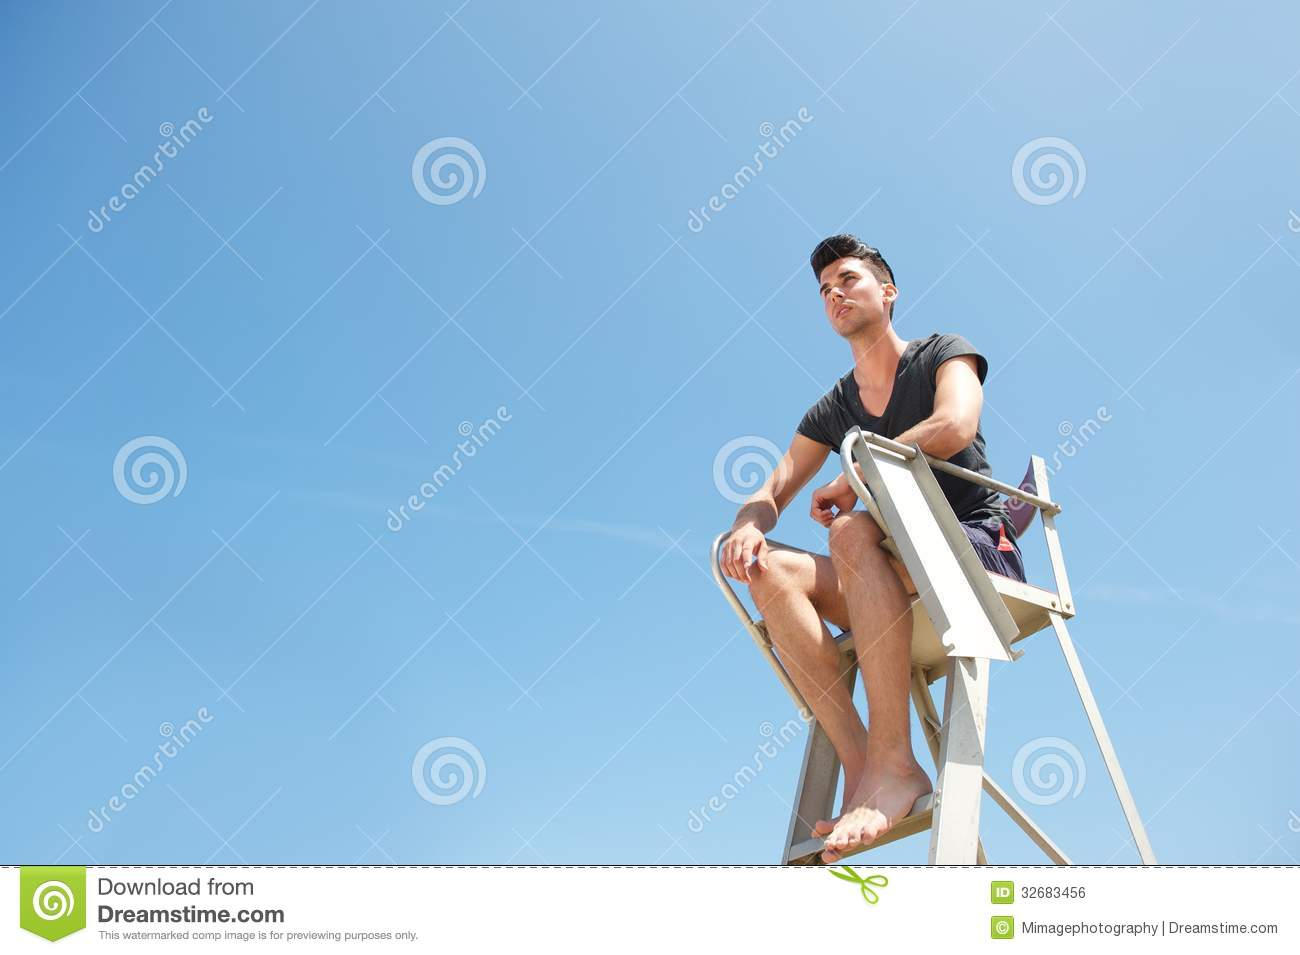 Lifeguard Sitting On Elevated Chair Stock Photo Image